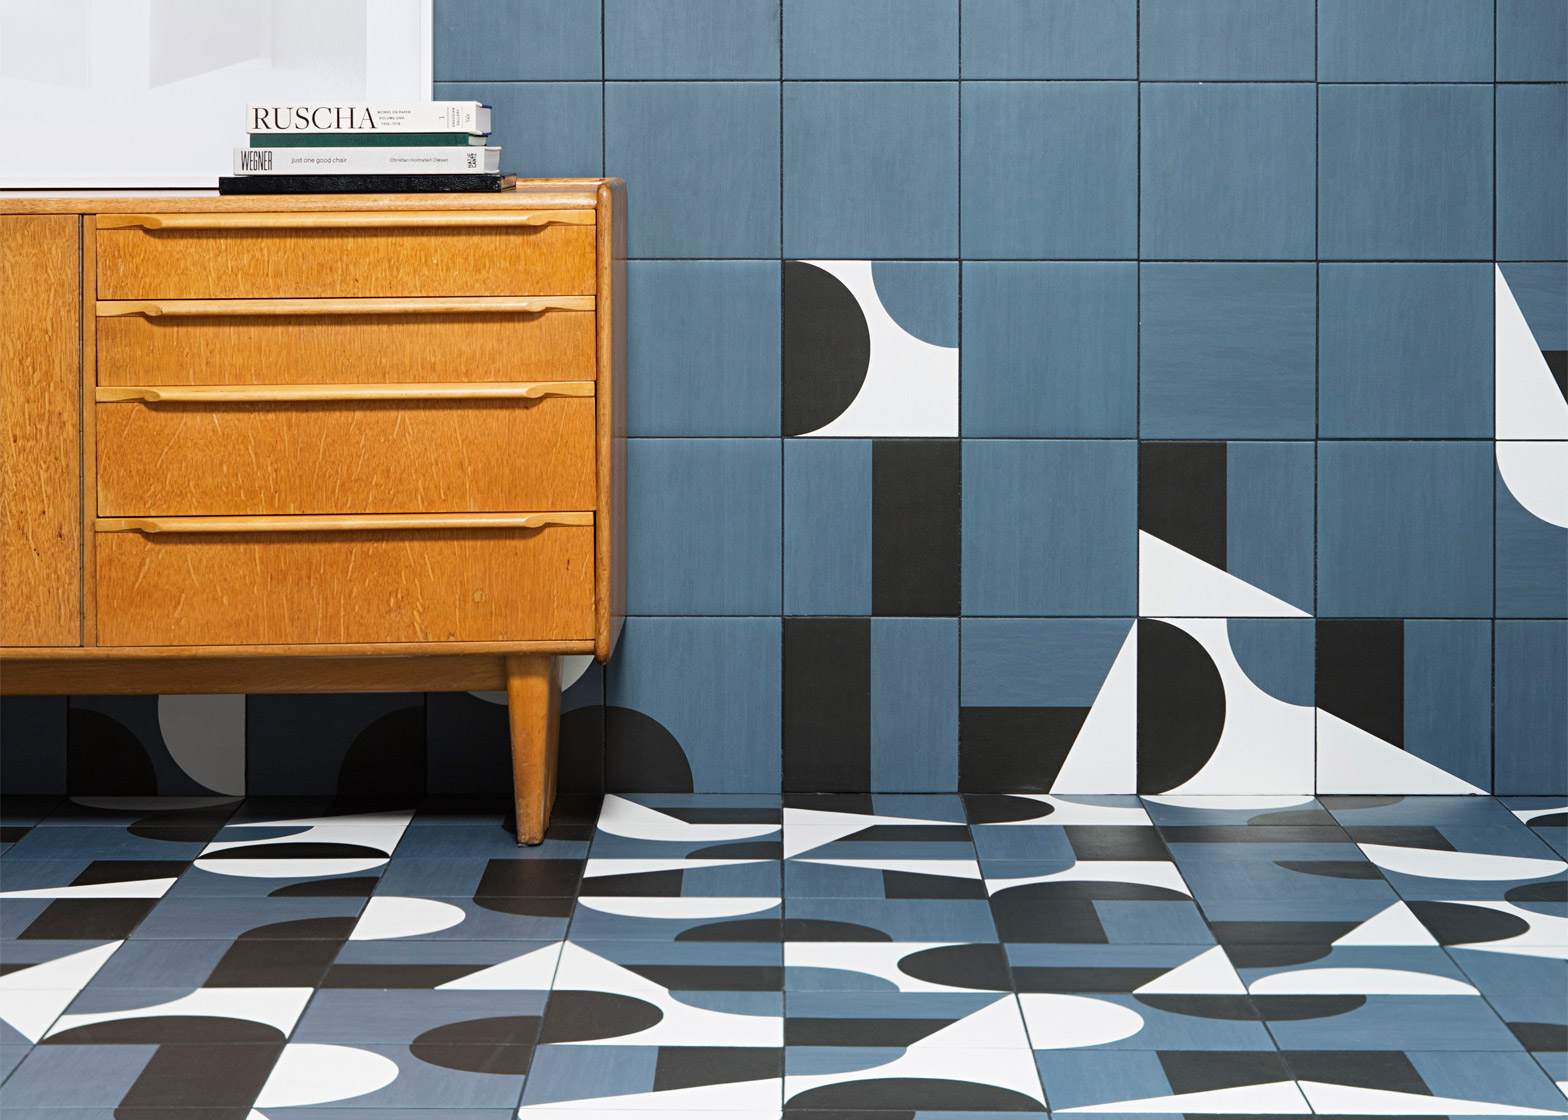 Barber and osgerby to launch two tile collections for mutina for Architectural decoration crossword clue